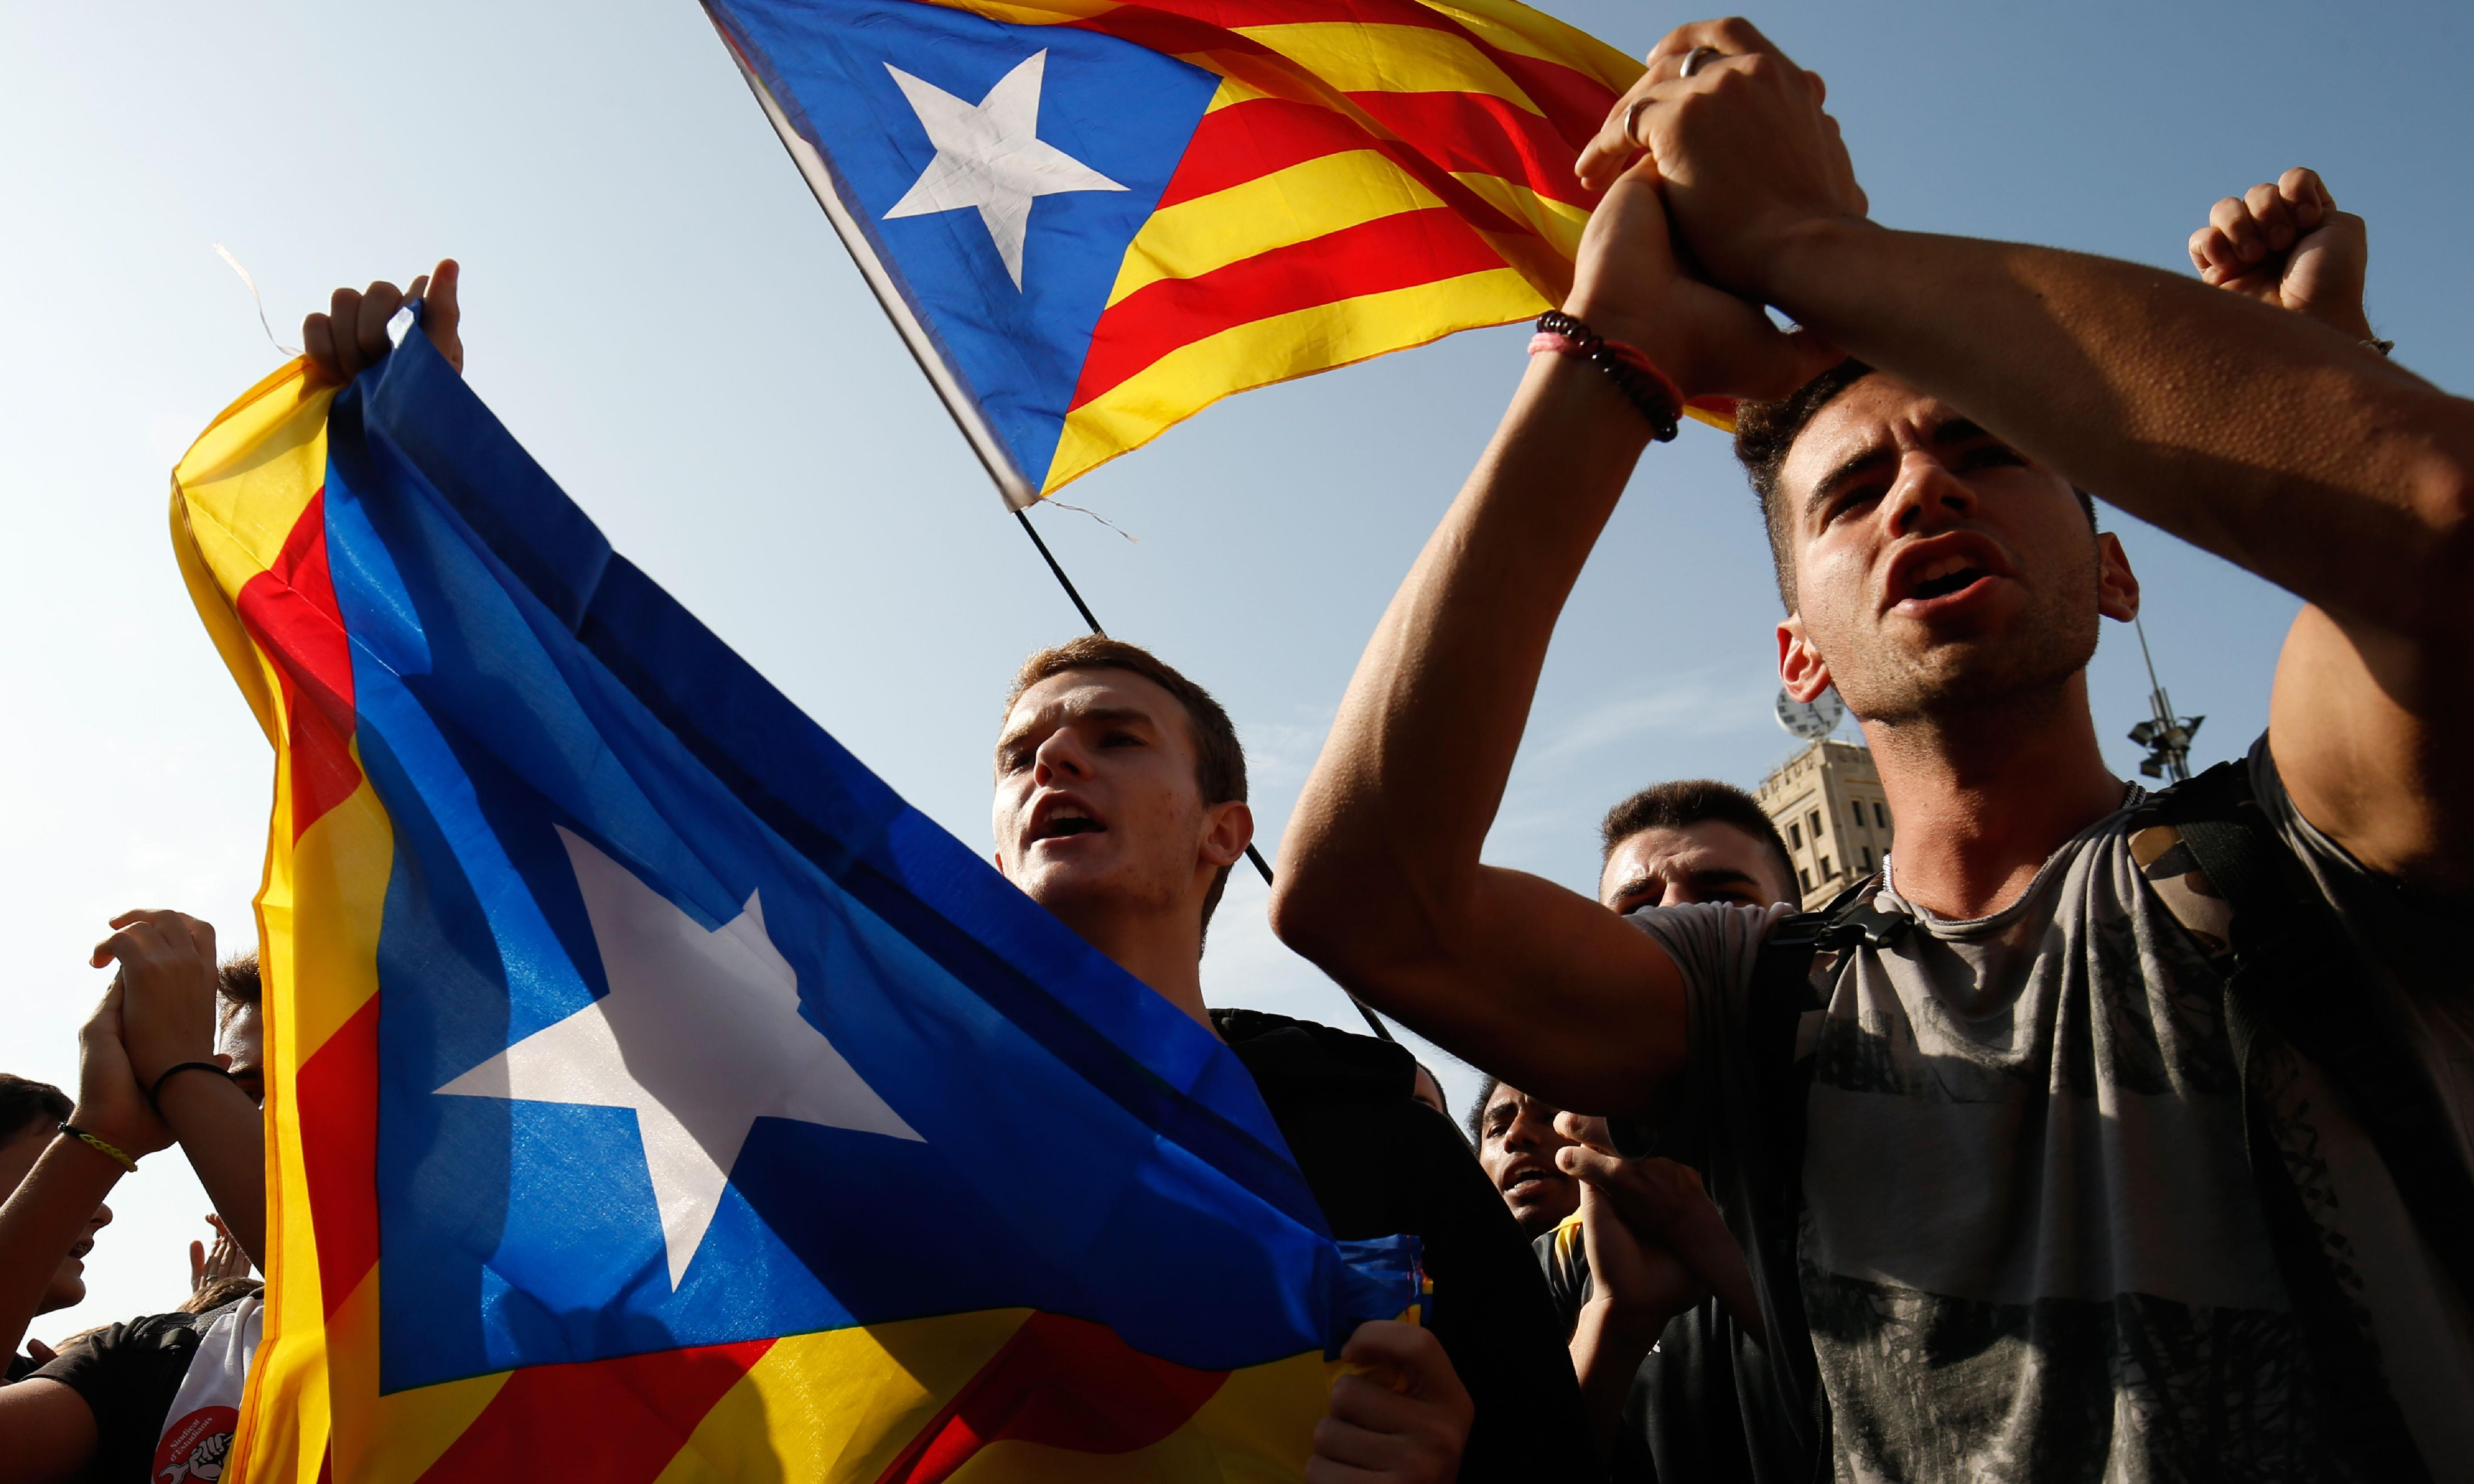 Catalonia's separatists were jailed for sedition, but brought down by hubris